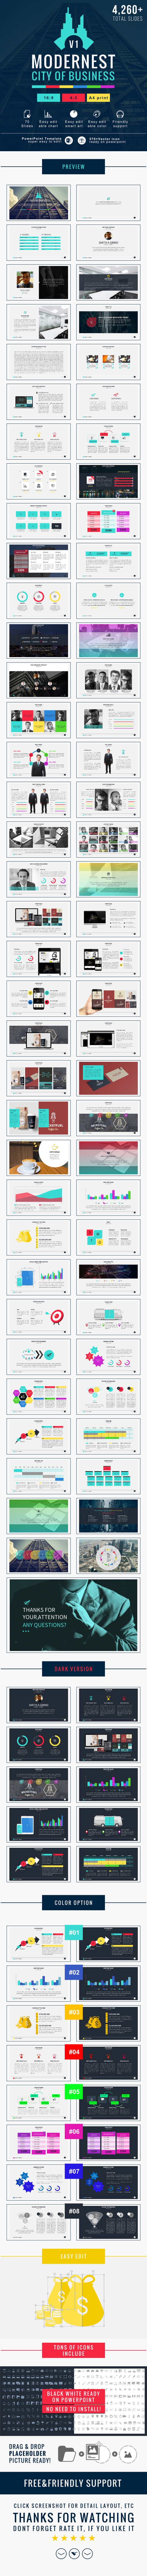 Modern city of business pitch deck powerpoint template on Behance